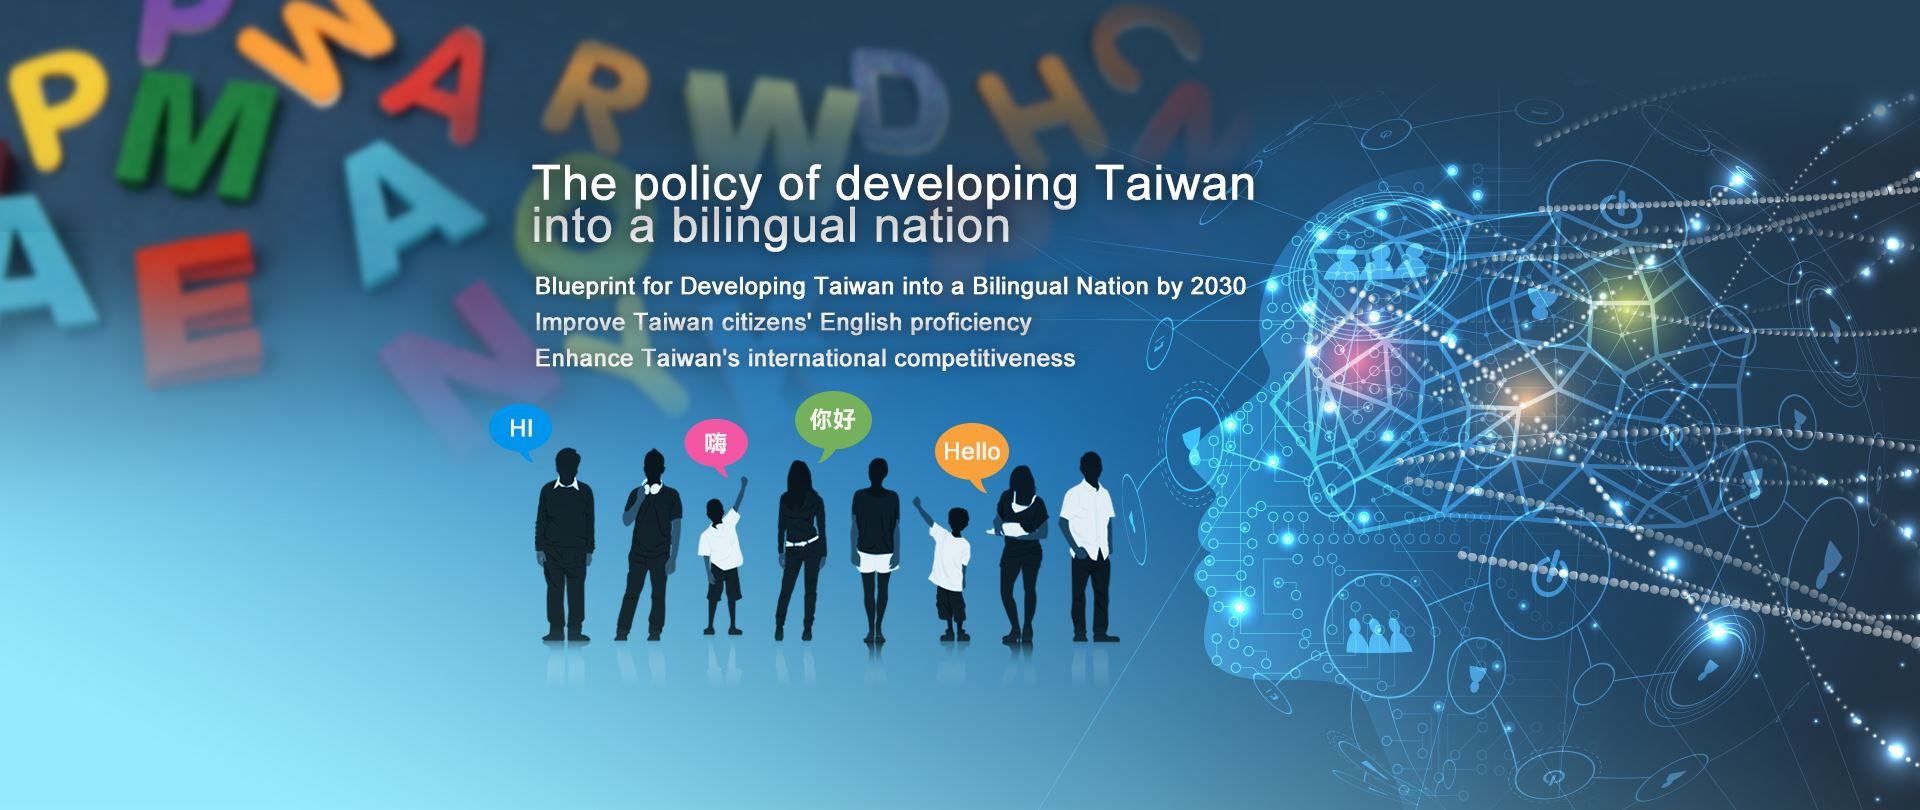 Blueprint for Developing Taiwan into a Bilingual Nation by 2030